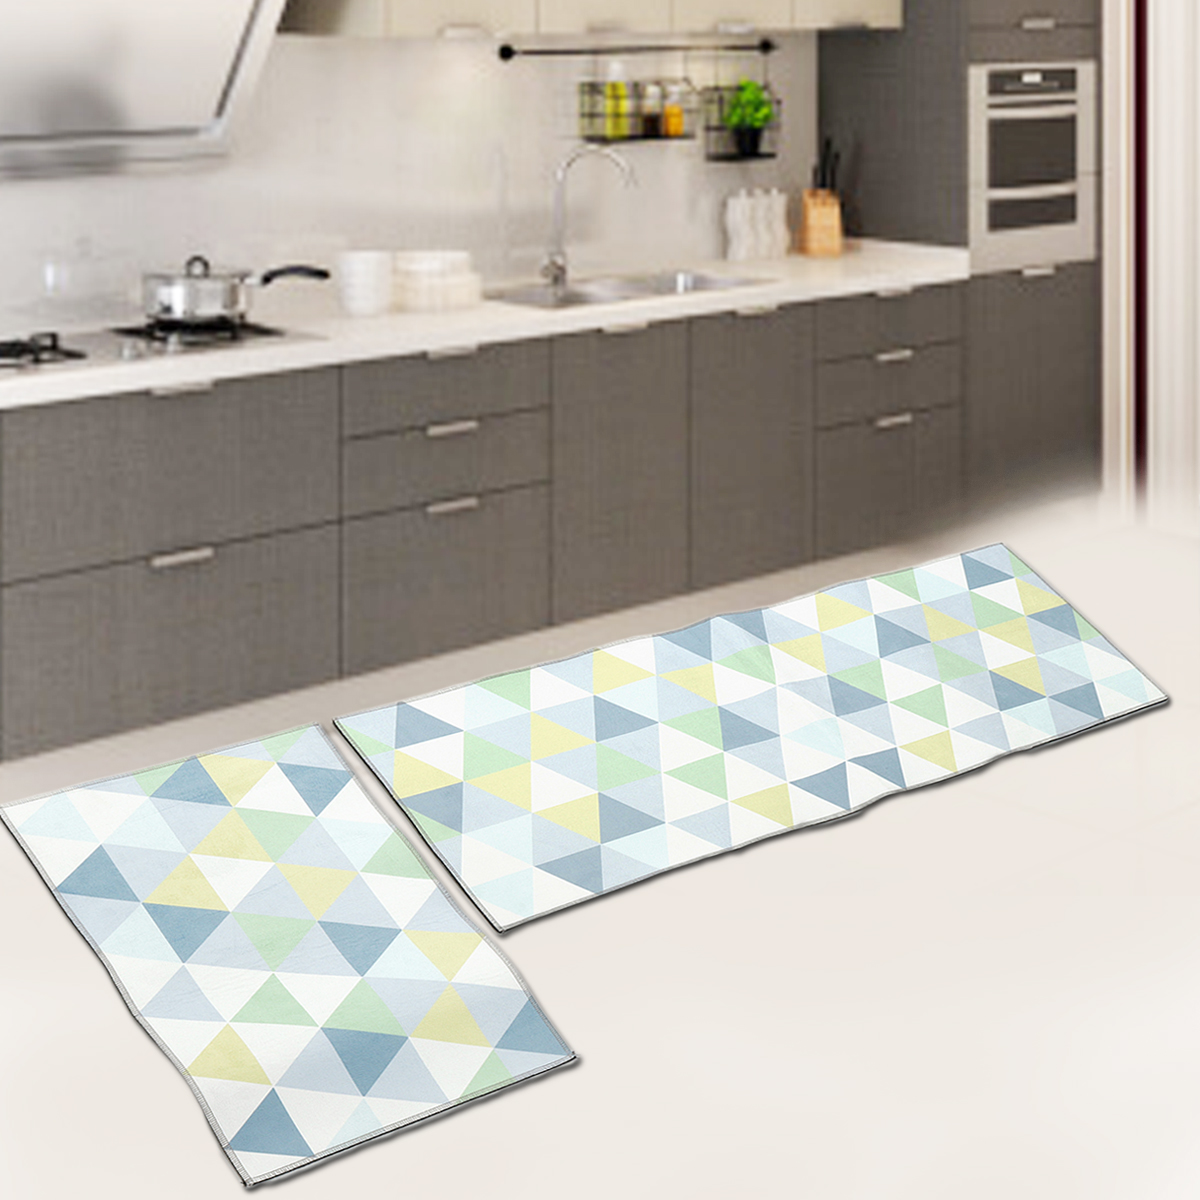 2Pcs Kitchen Floor Carpet Non-Slip Area Rug Home Bathroom Door Mat Set